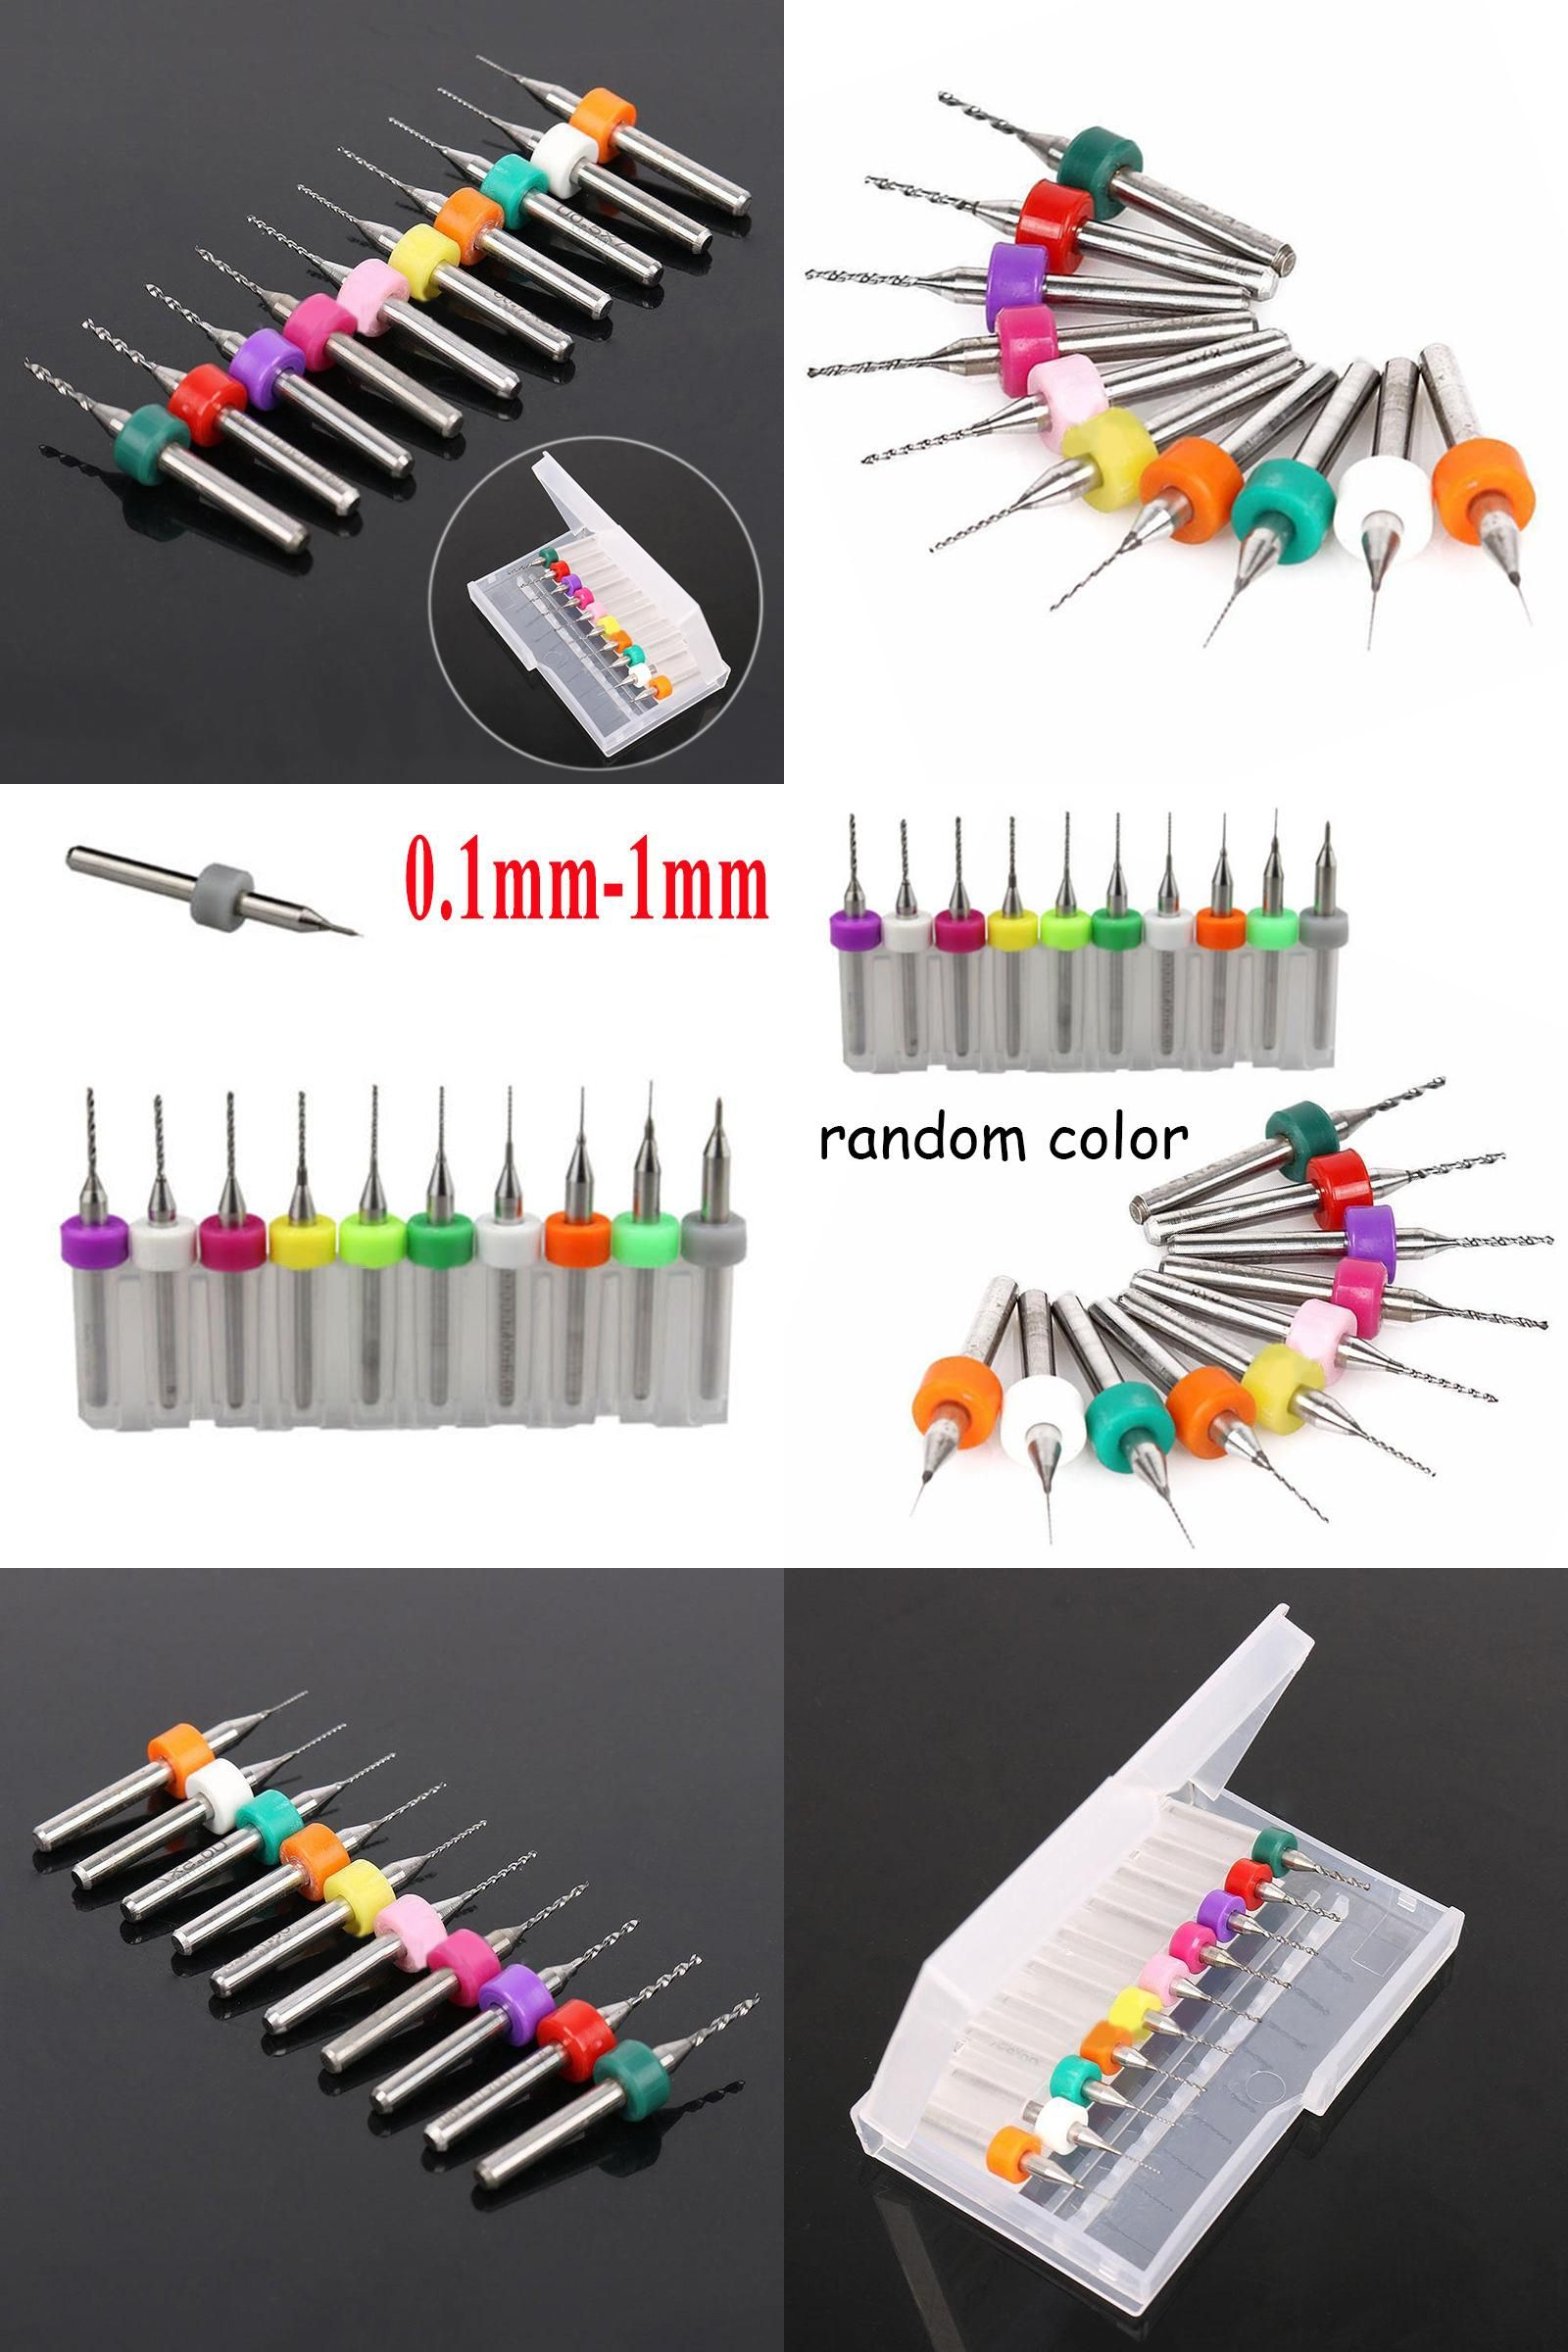 visit to buy] 10pcs set hard alloy pcb carbide drill bits 0 1mm 1 0[visit to buy] 10pcs set hard alloy pcb carbide drill bits 0 1mm 1 0mm print circuit board carbide micro drill bit tool set advertisement